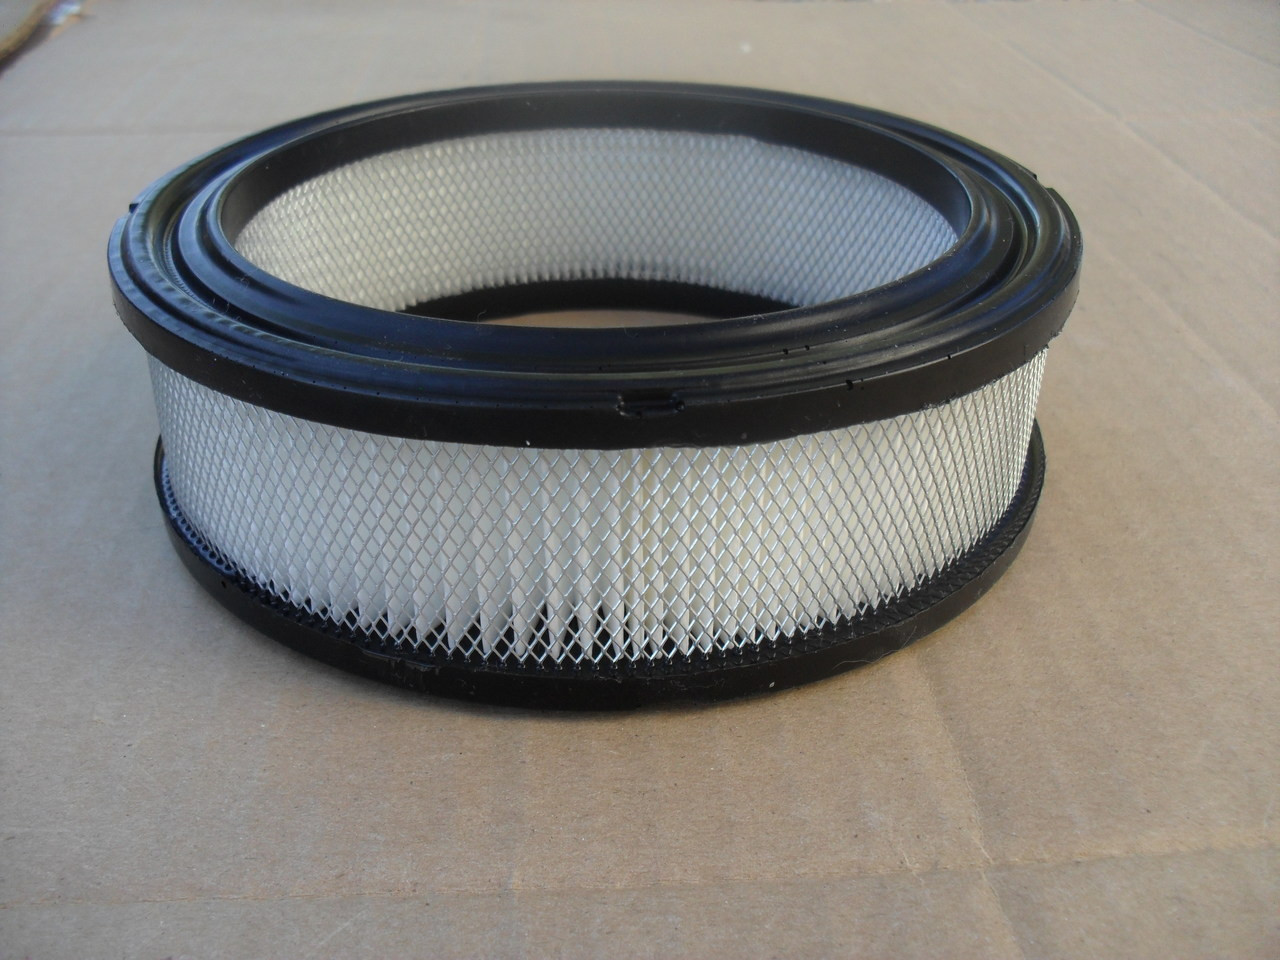 Air Filter for Kohler K241 to K321, K181NL Magnum M8, 235116, 235116-S, 235116S, 8 HP to 16 HP